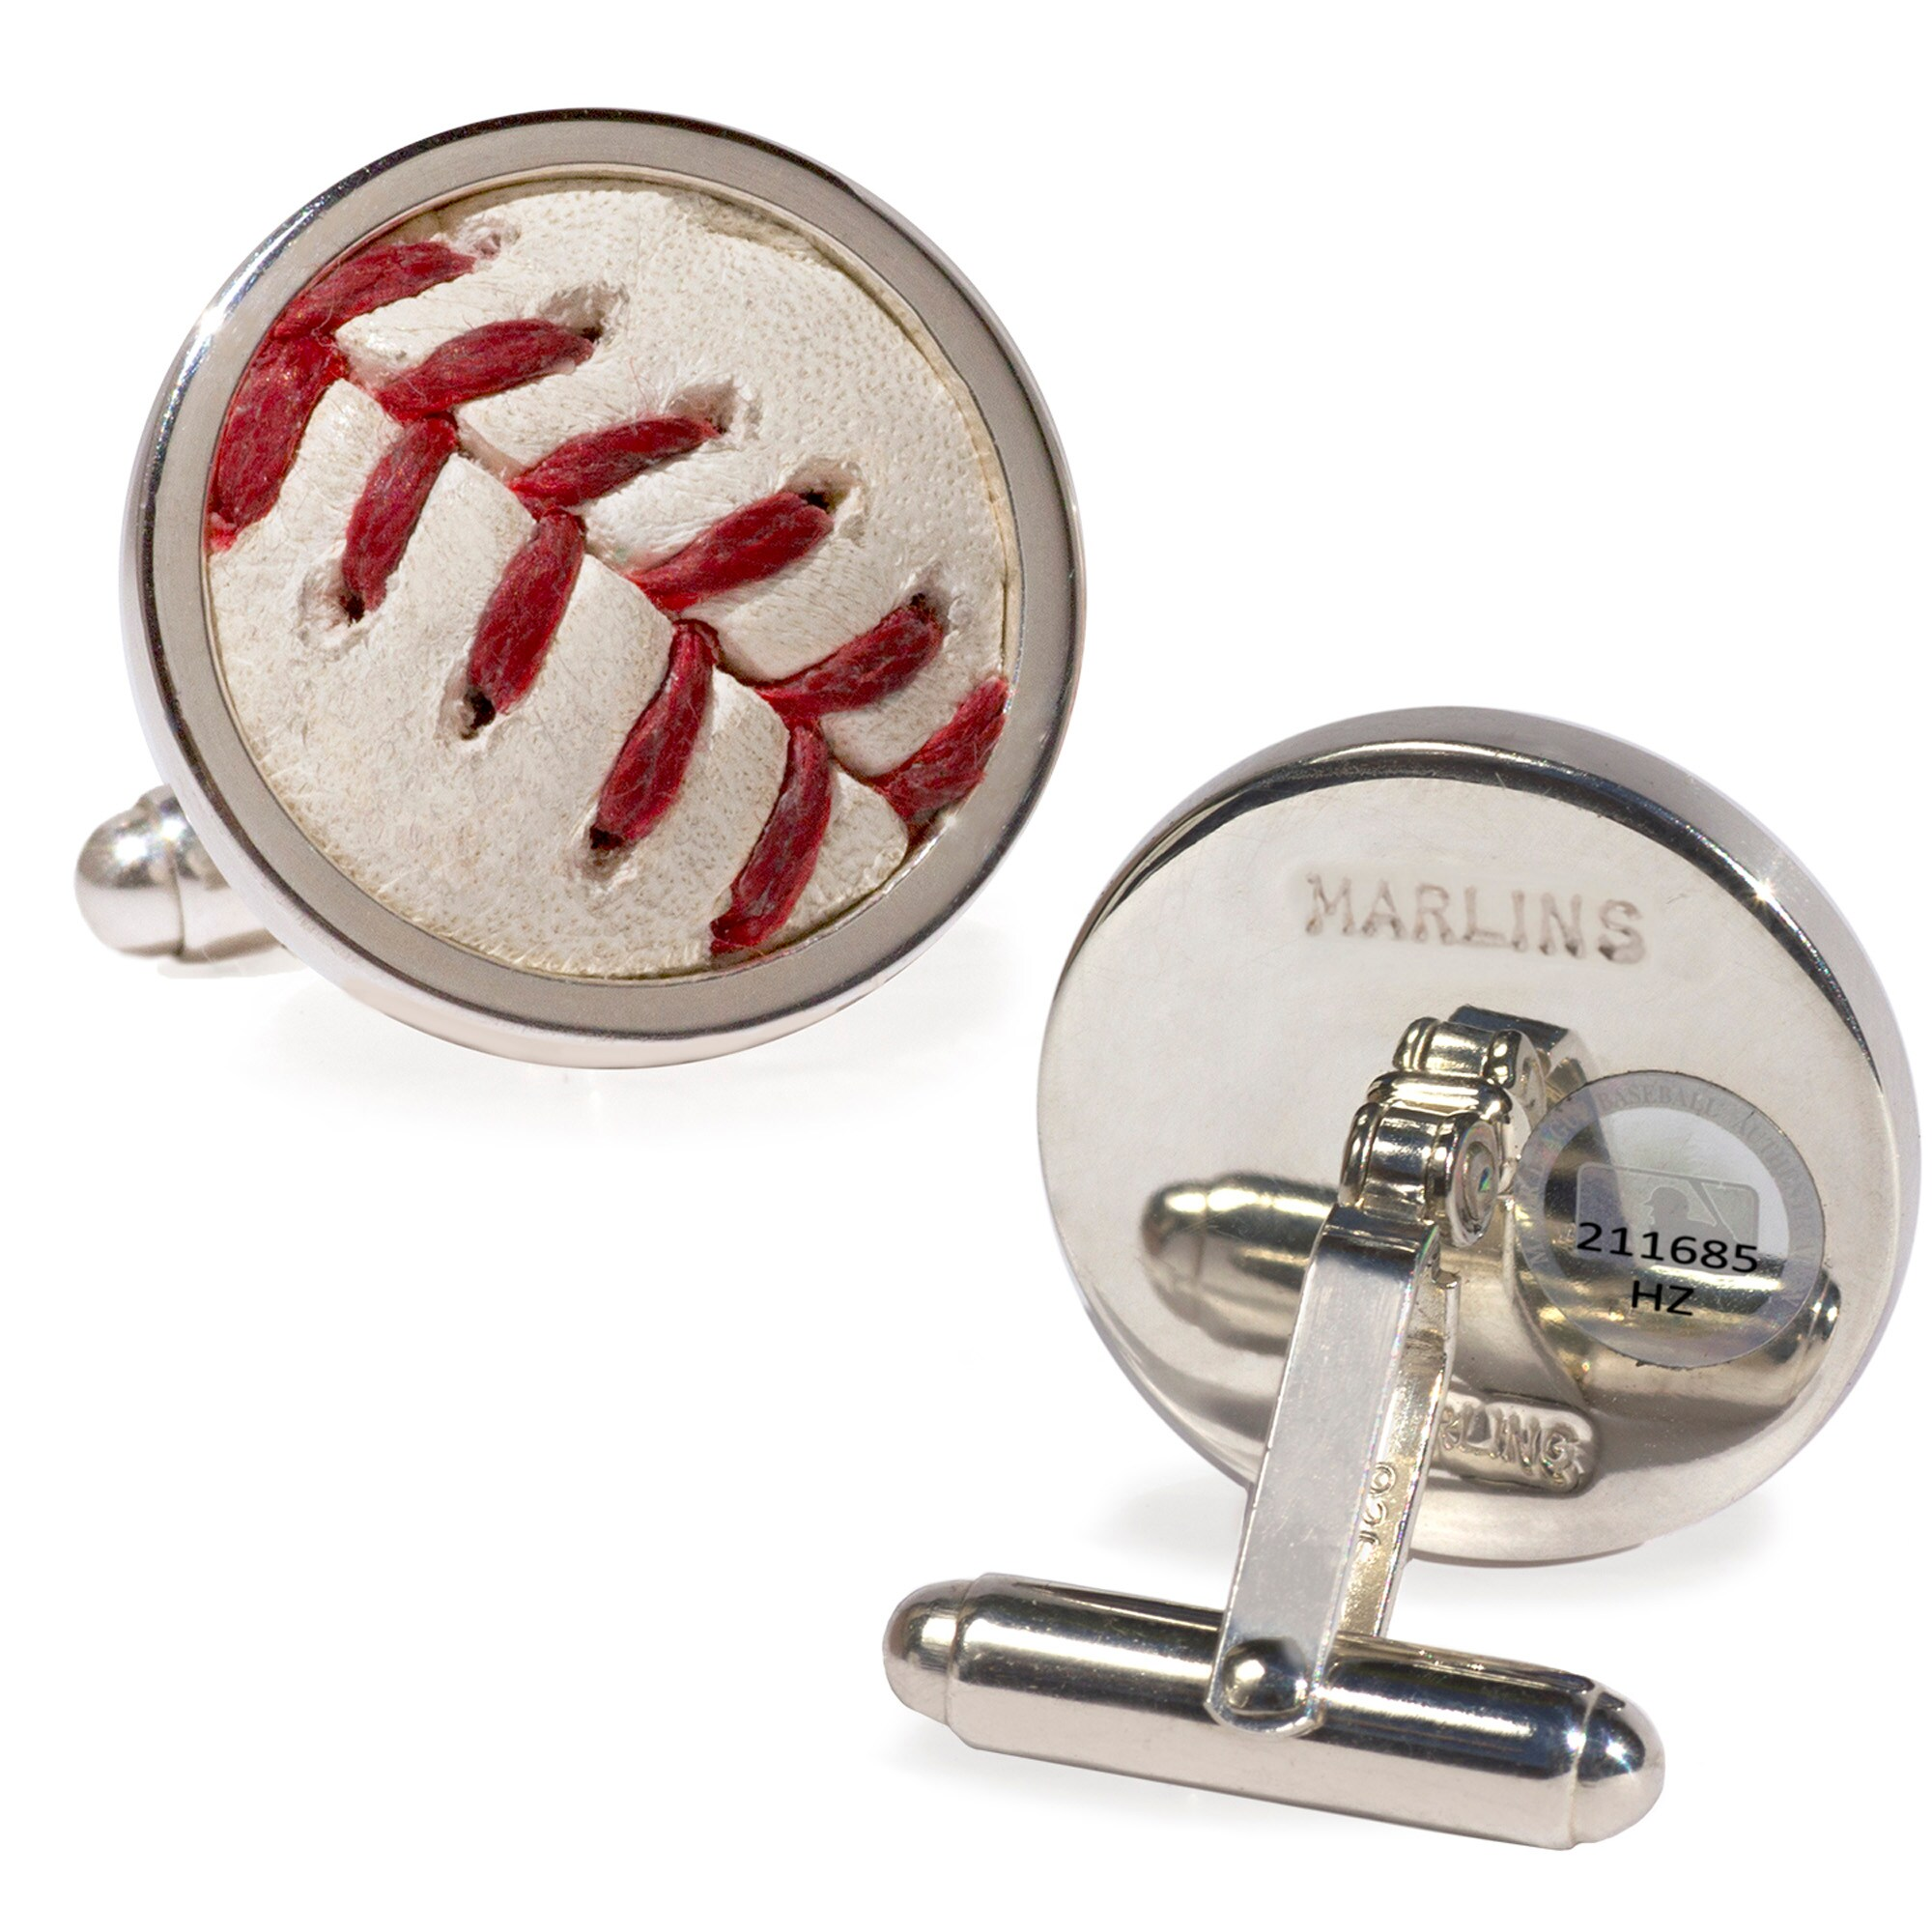 Miami Marlins Tokens & Icons Game-Used Baseball Cuff Links